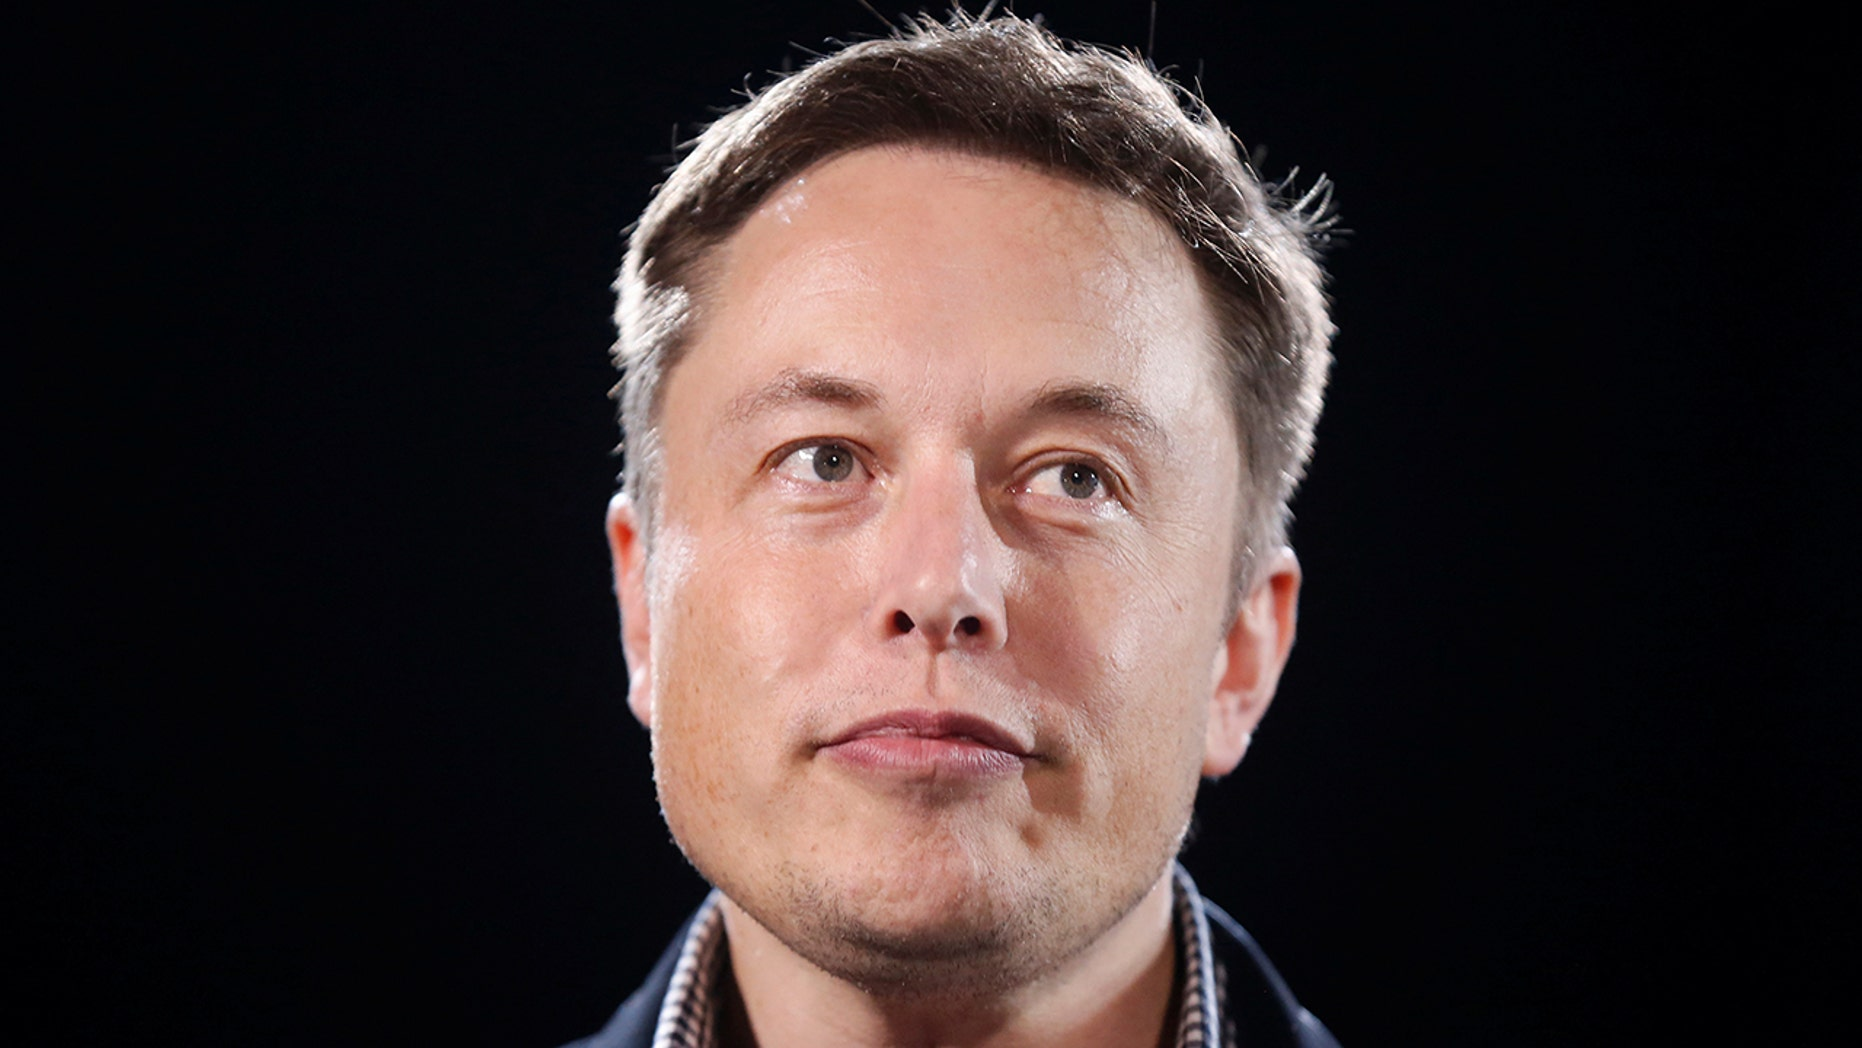 FILE PHOTO: Elon Musk thinks there's 70 percent chance he'll move to Mars. (Credit:REUTERS/Lucy Nicholson)